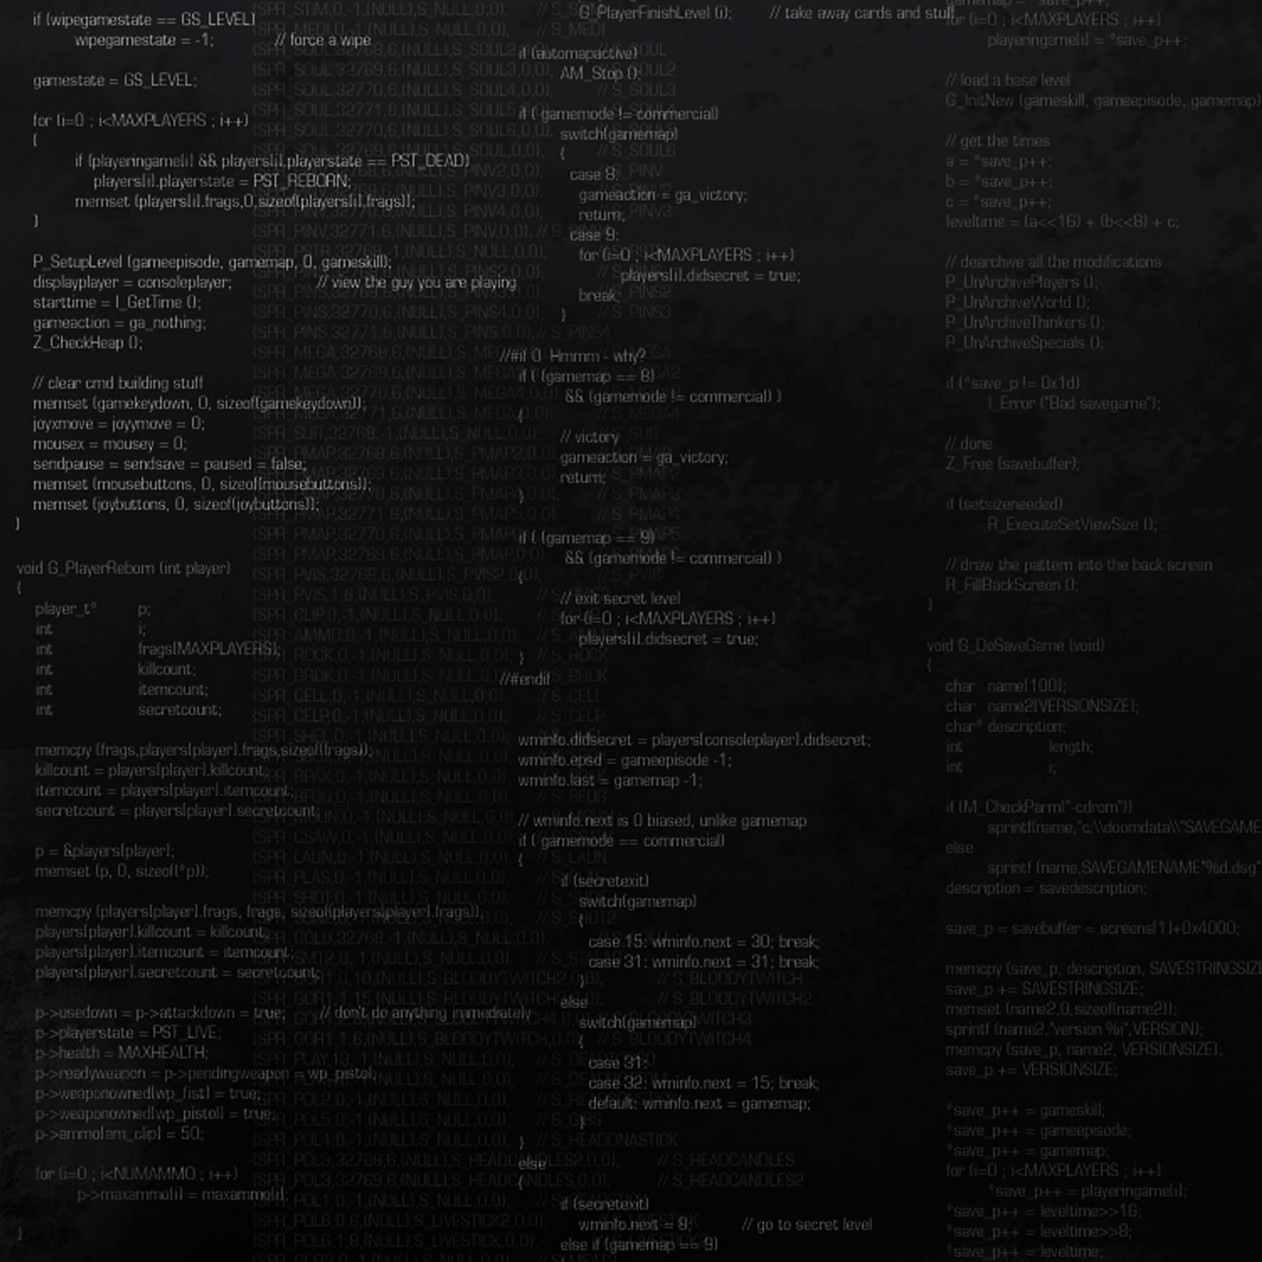 Programming Wallpaper for Apple iPad mini